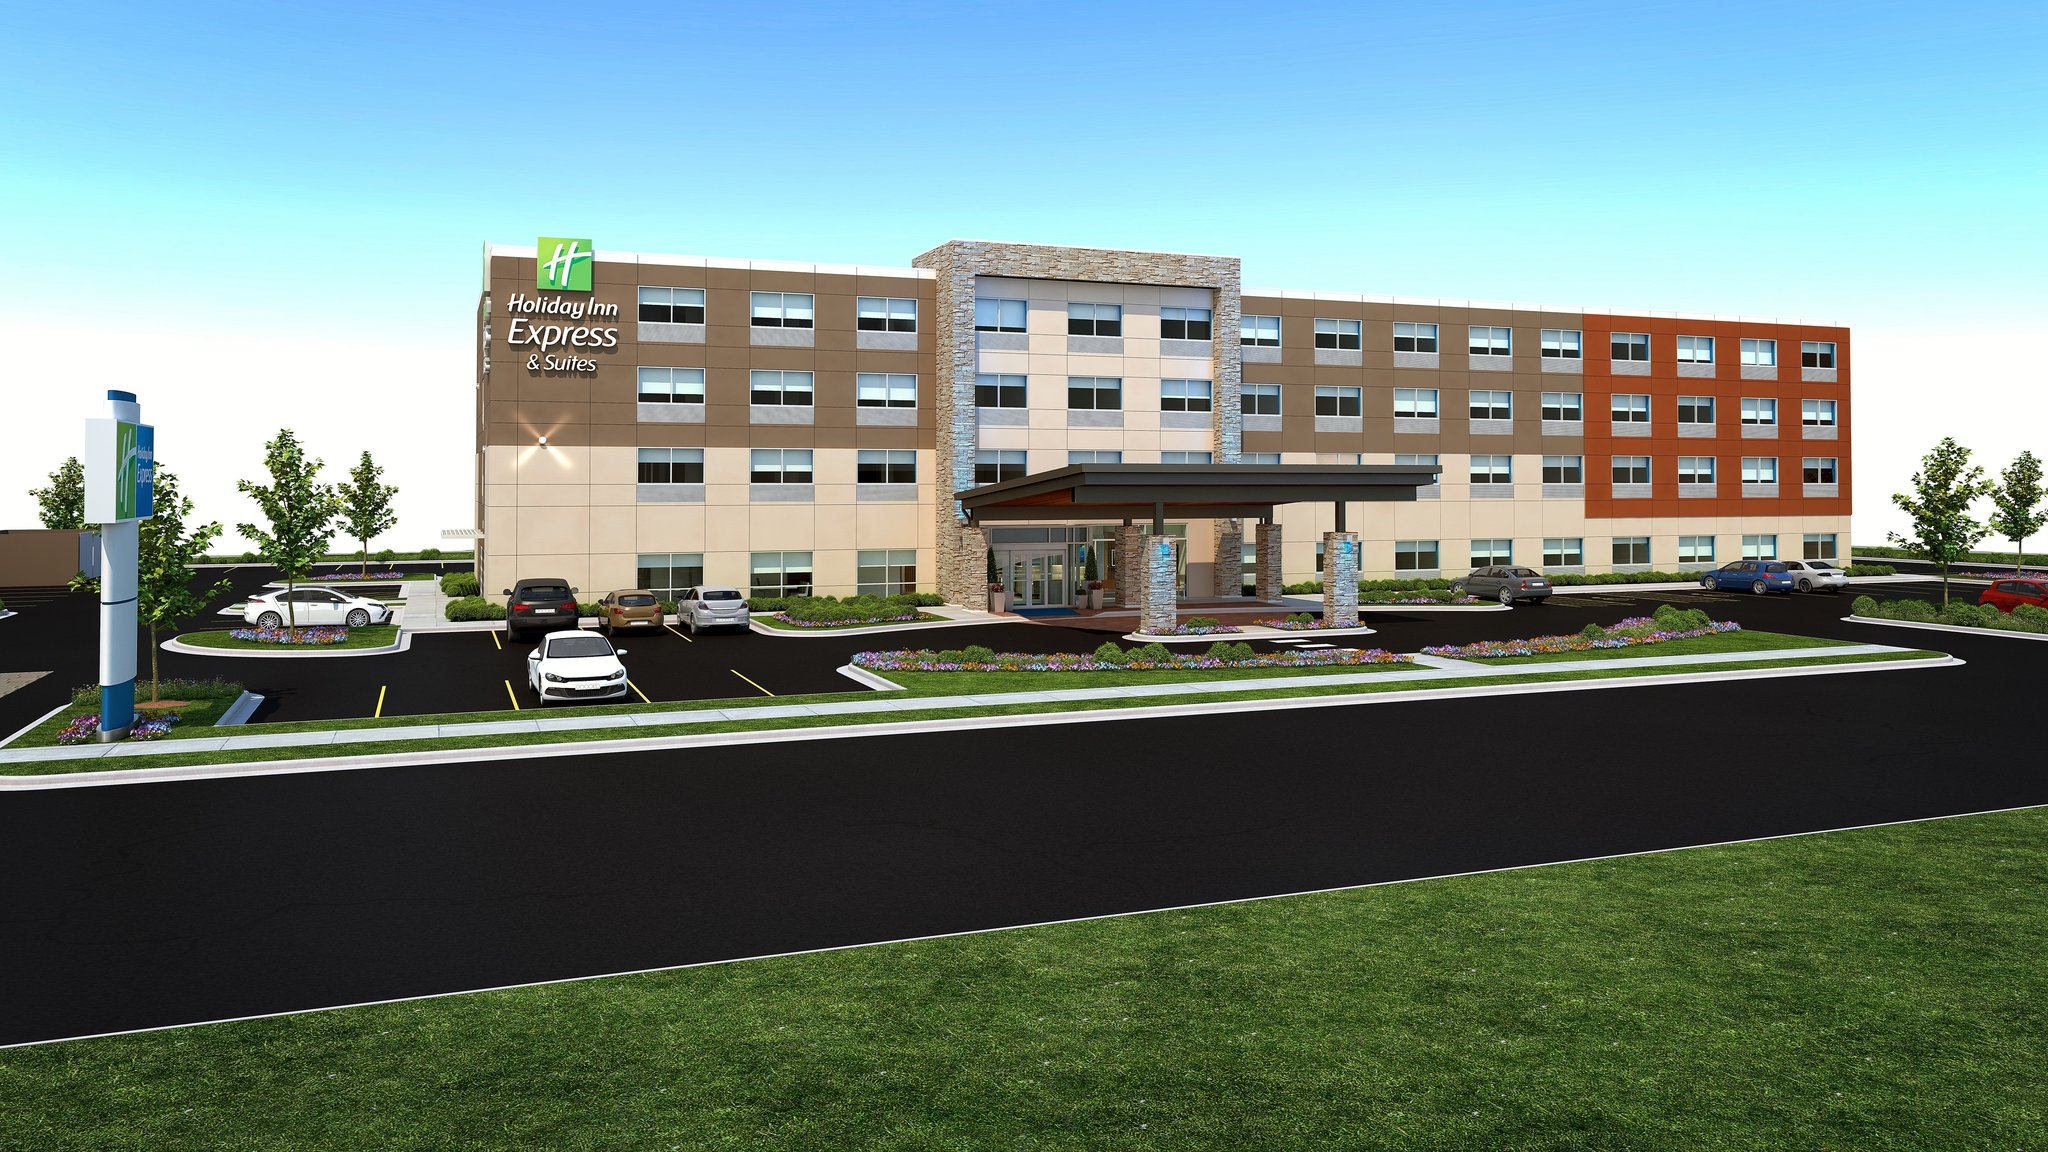 Holiday Inn Express & Suites Ottumwa